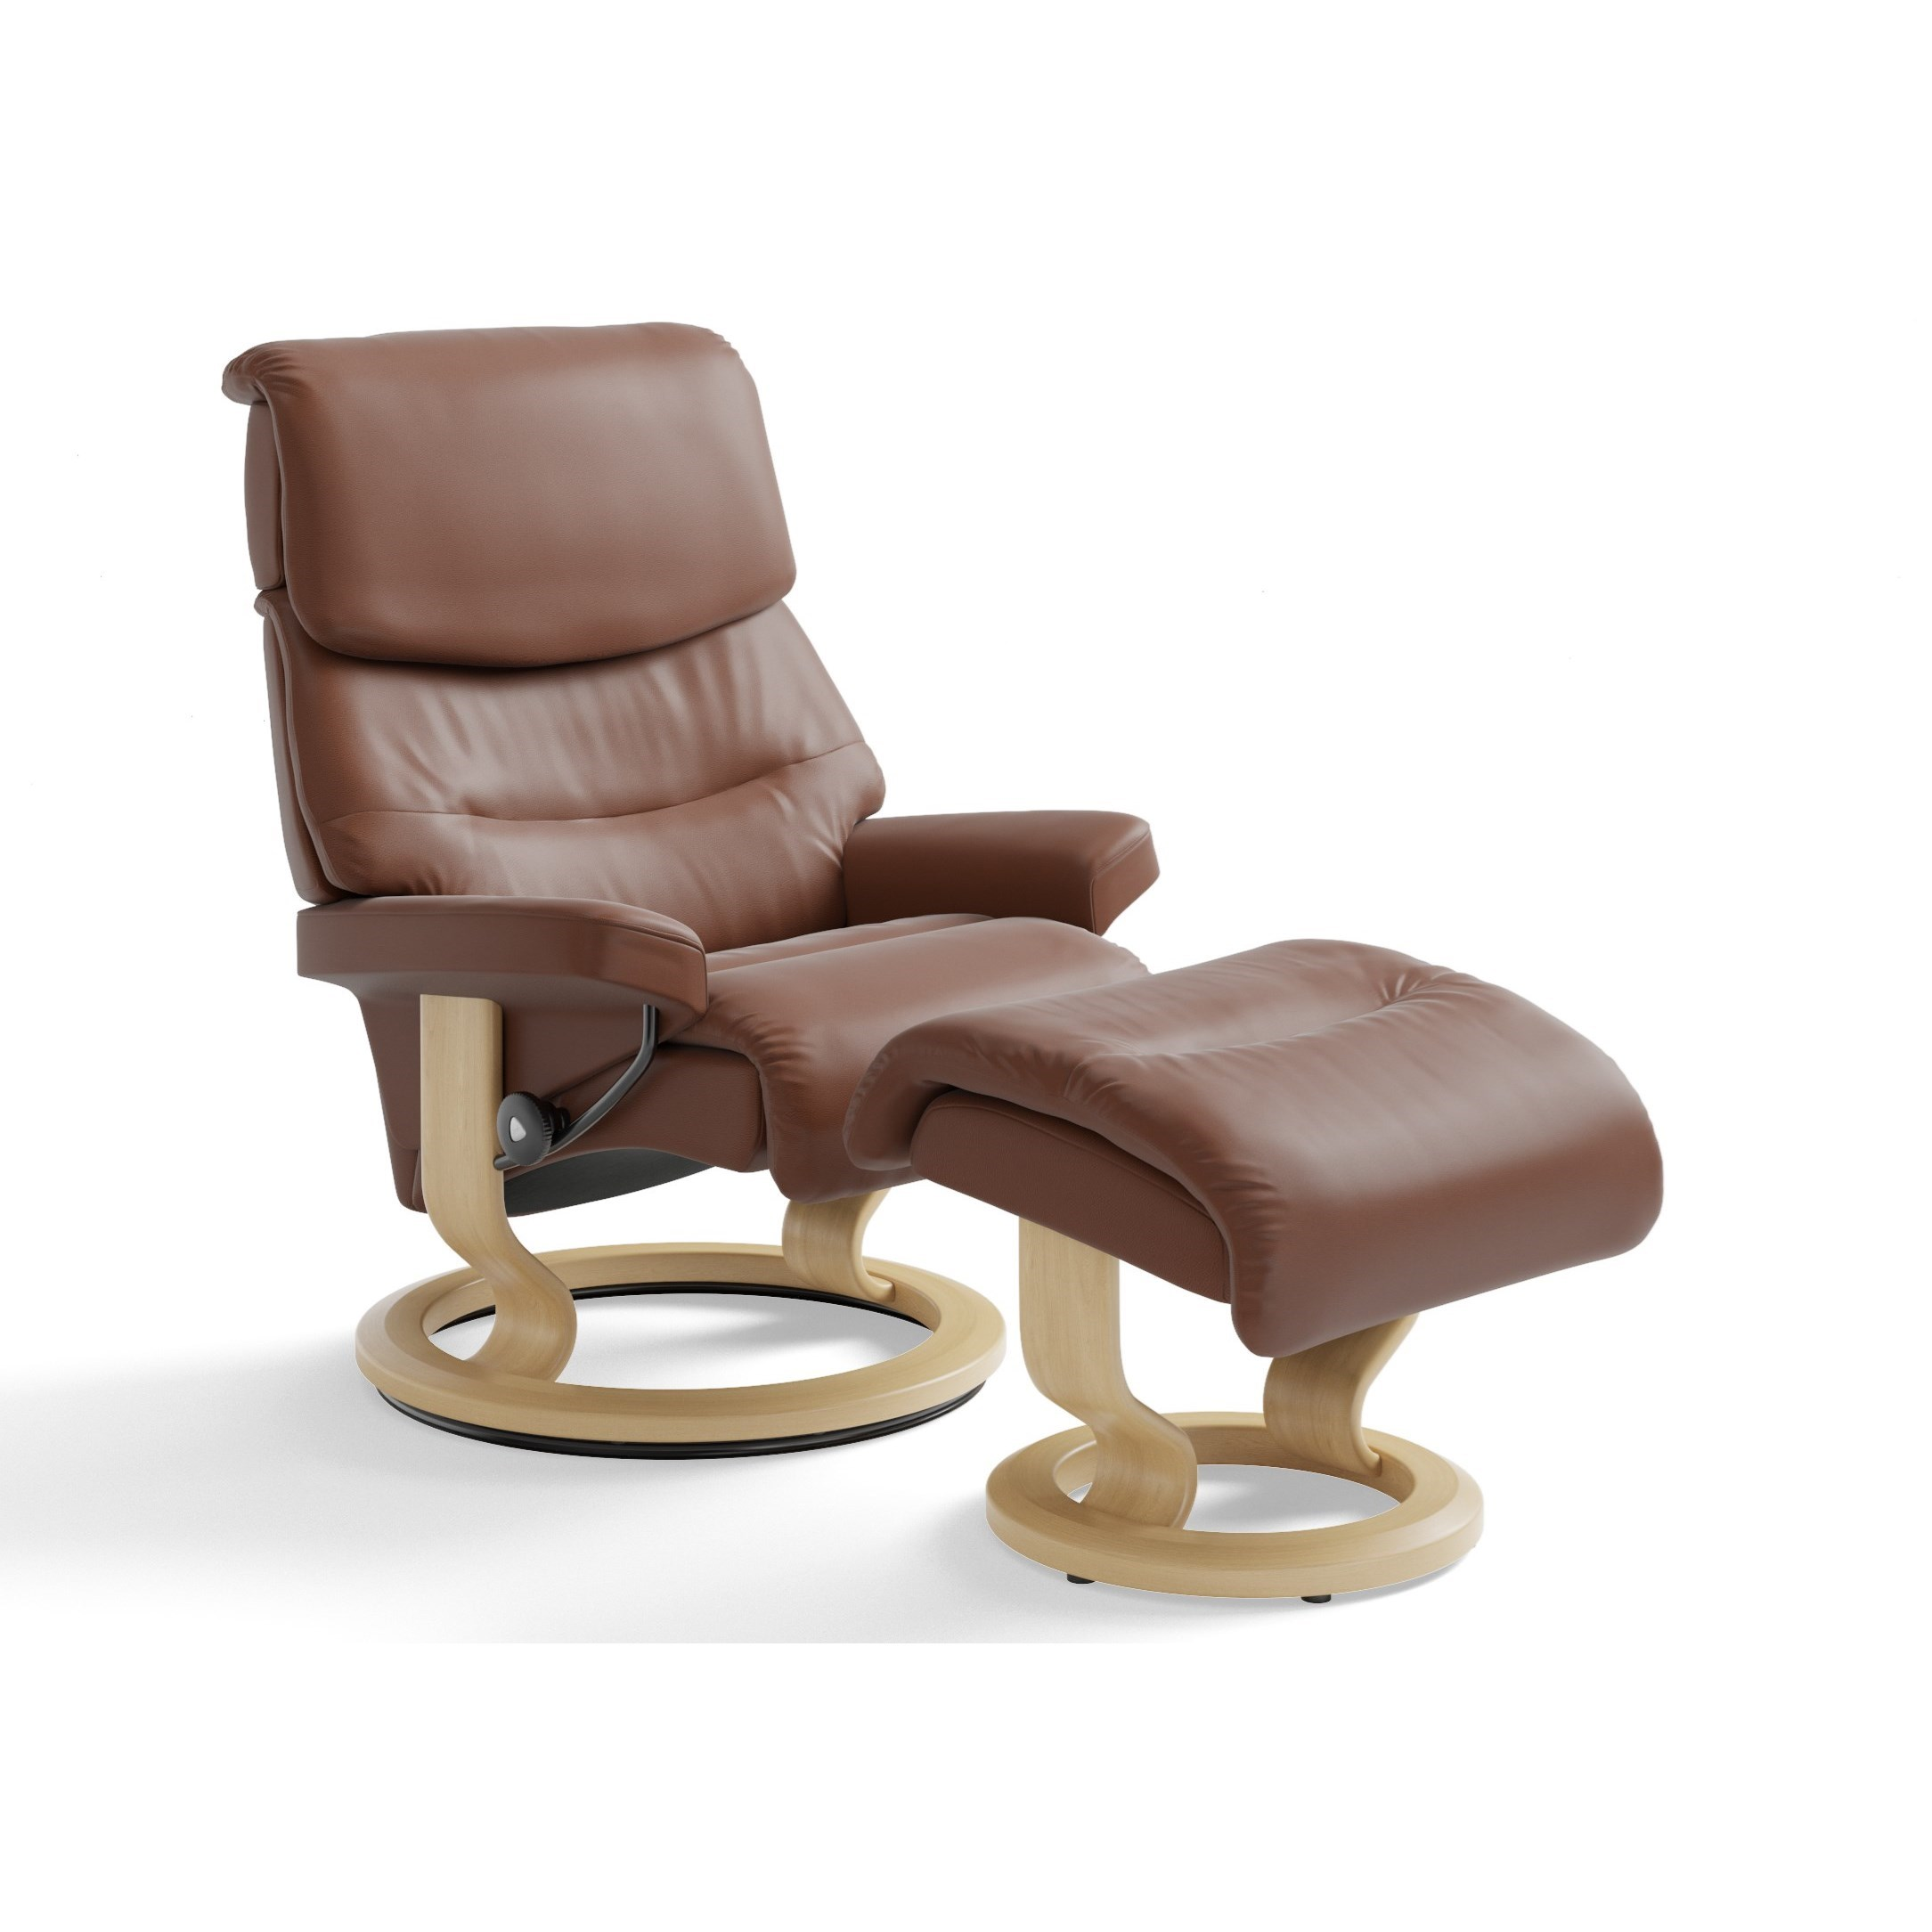 Small Chair With Ottoman Stressless Capri Small Reclining Chair And Ottoman With